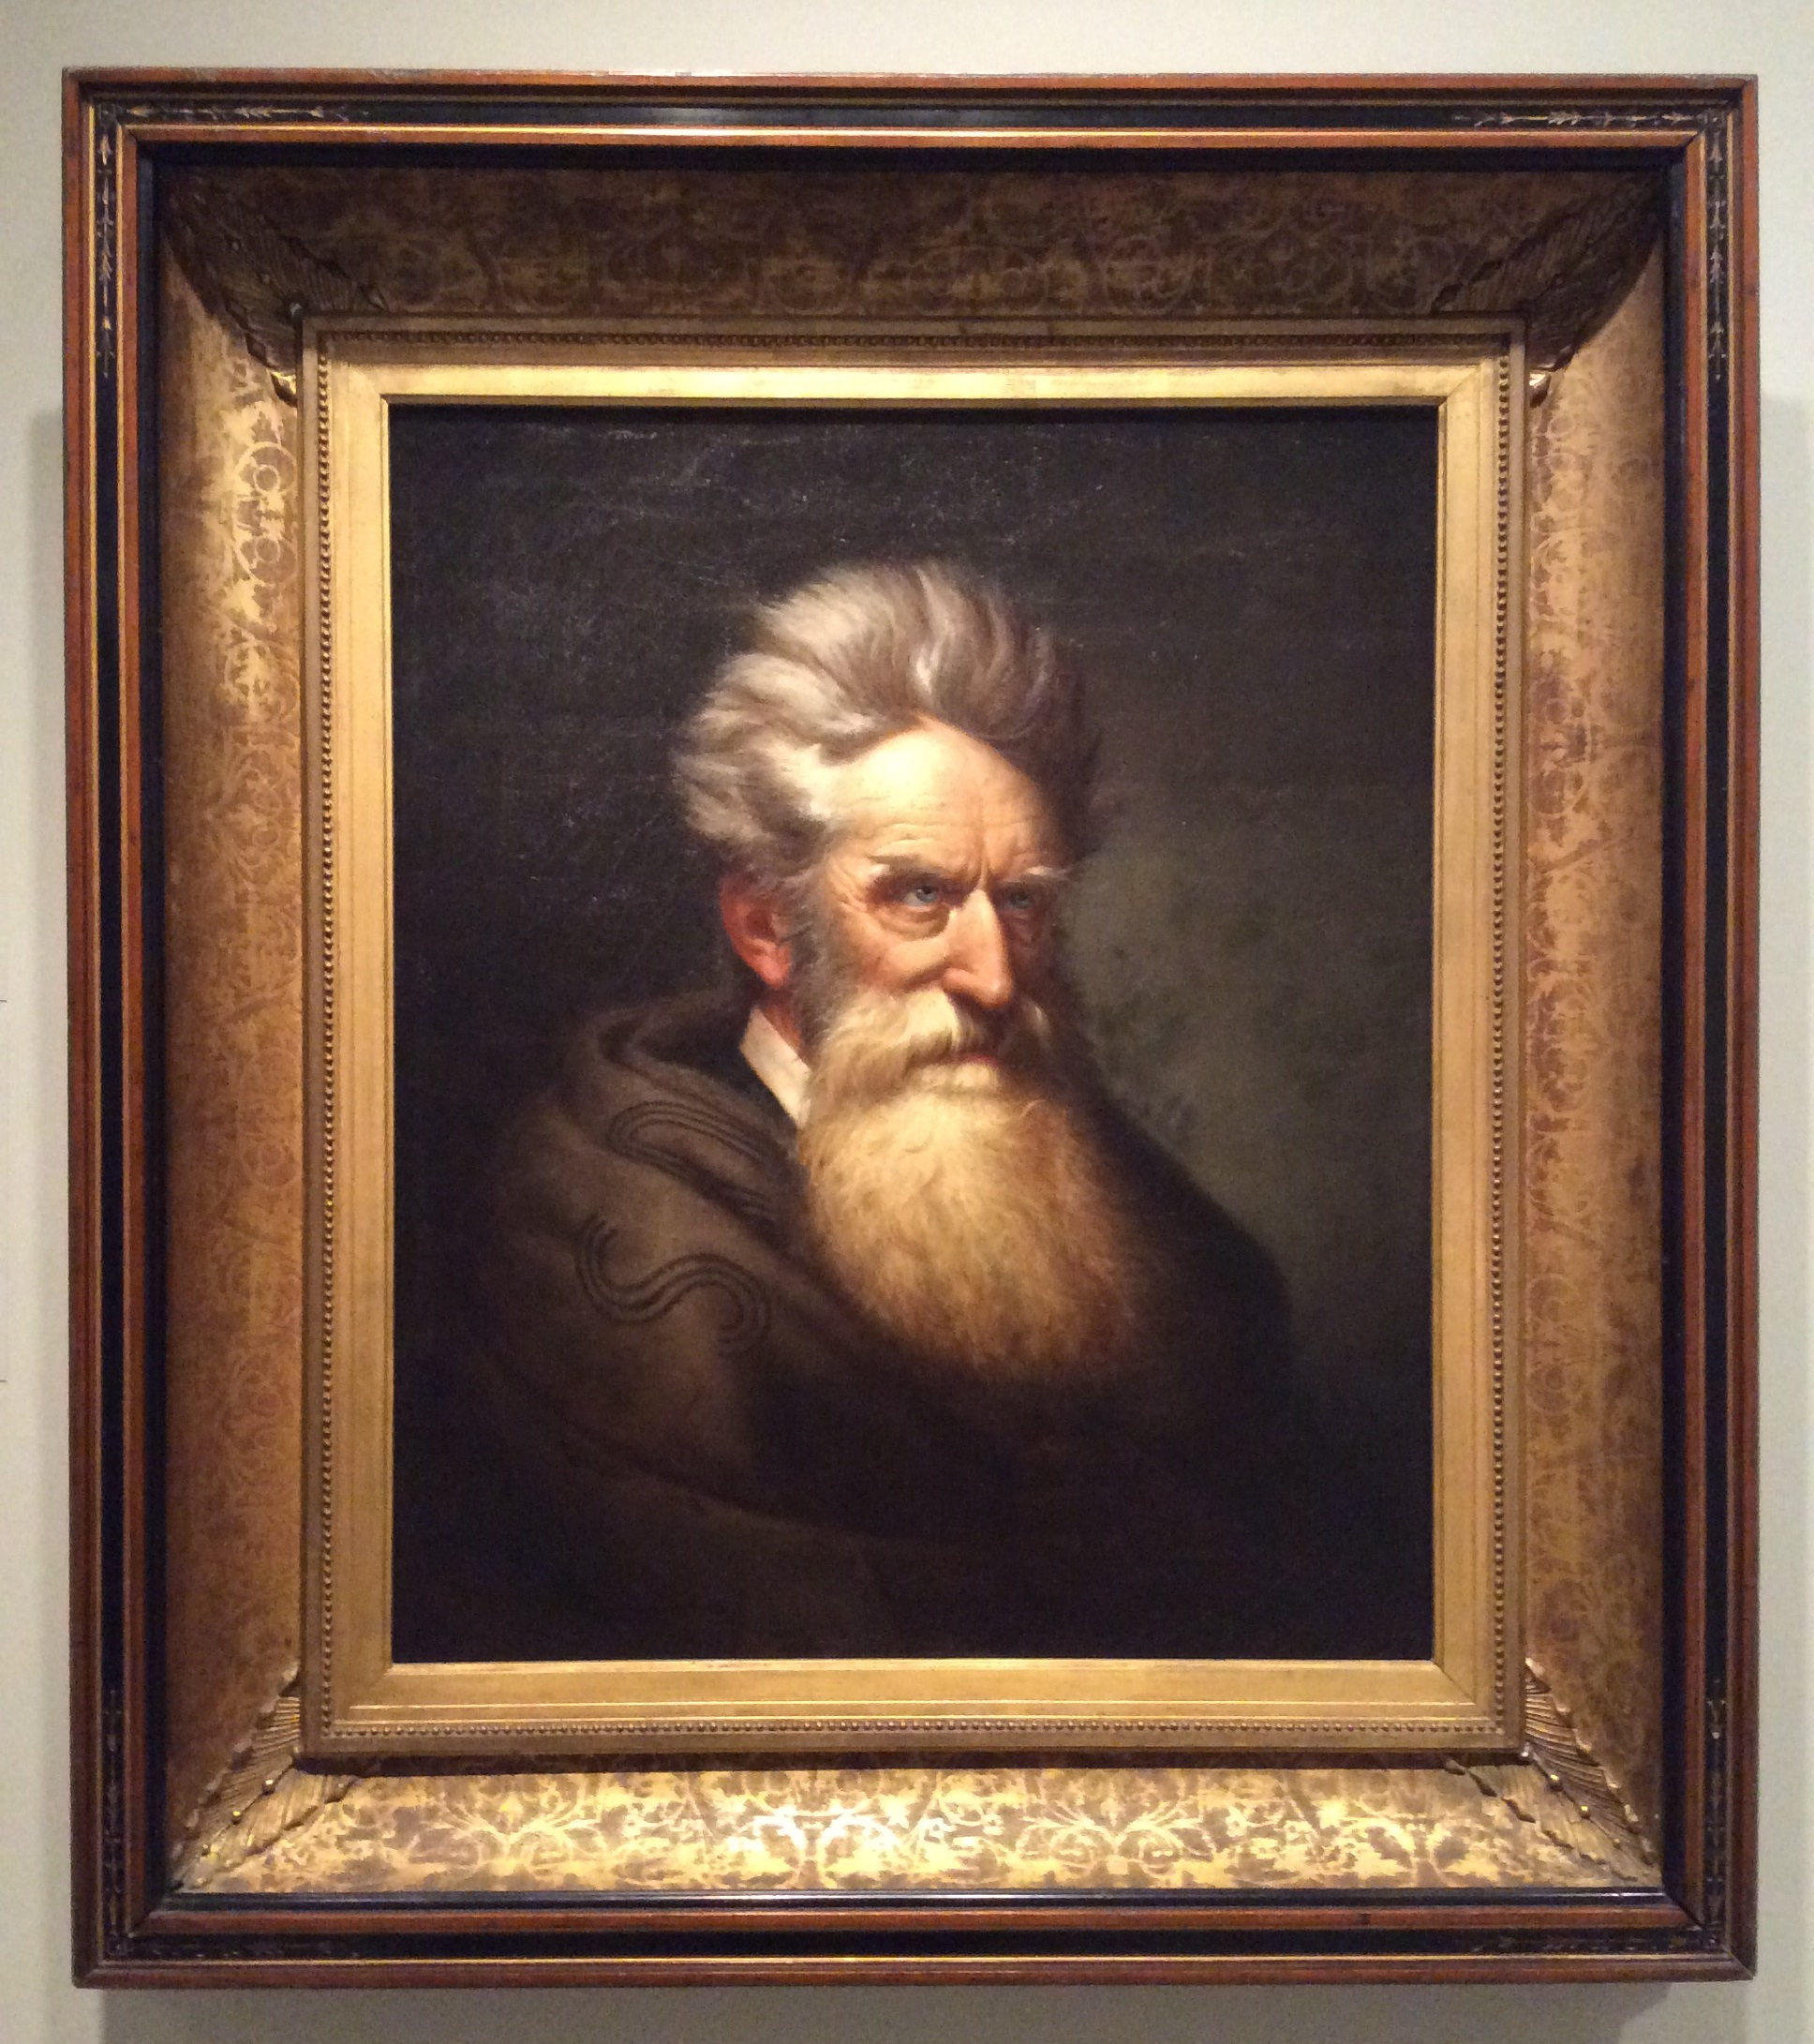 Portrait of John Brown by Born Torrington in National Portrait Gallery